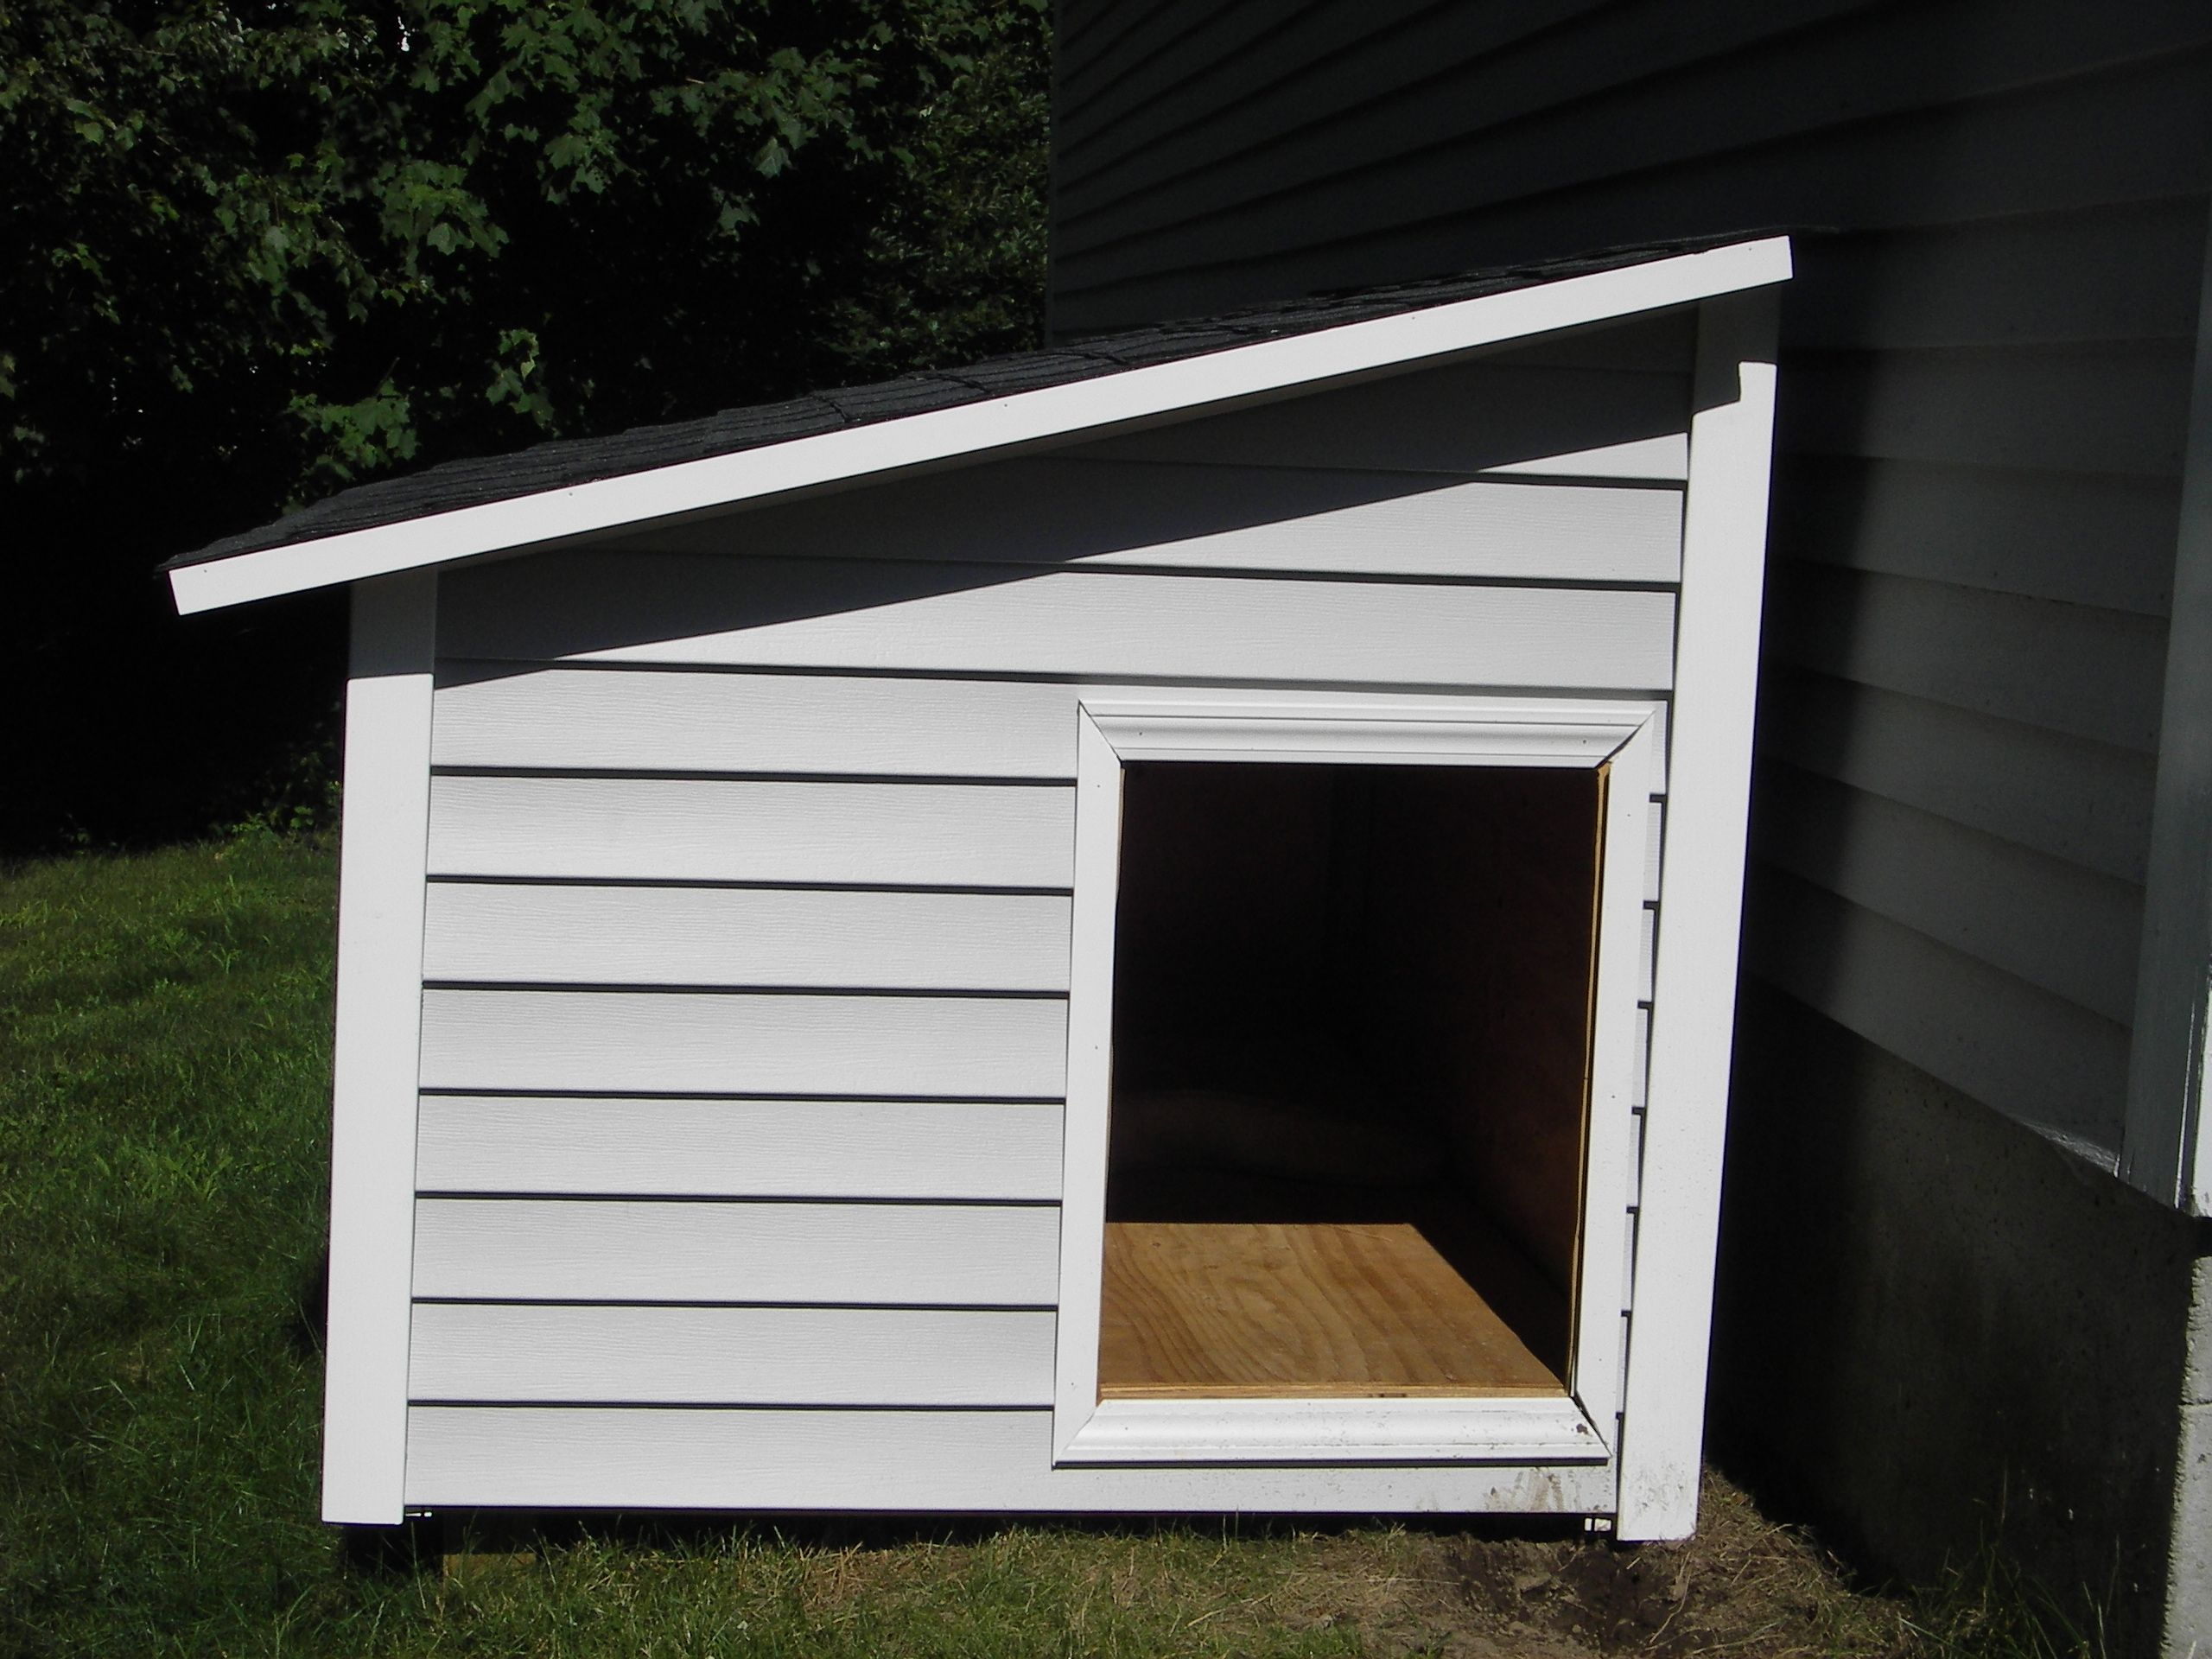 This Lean To Style Dog House Will Make A Great Outdoor Litter Box